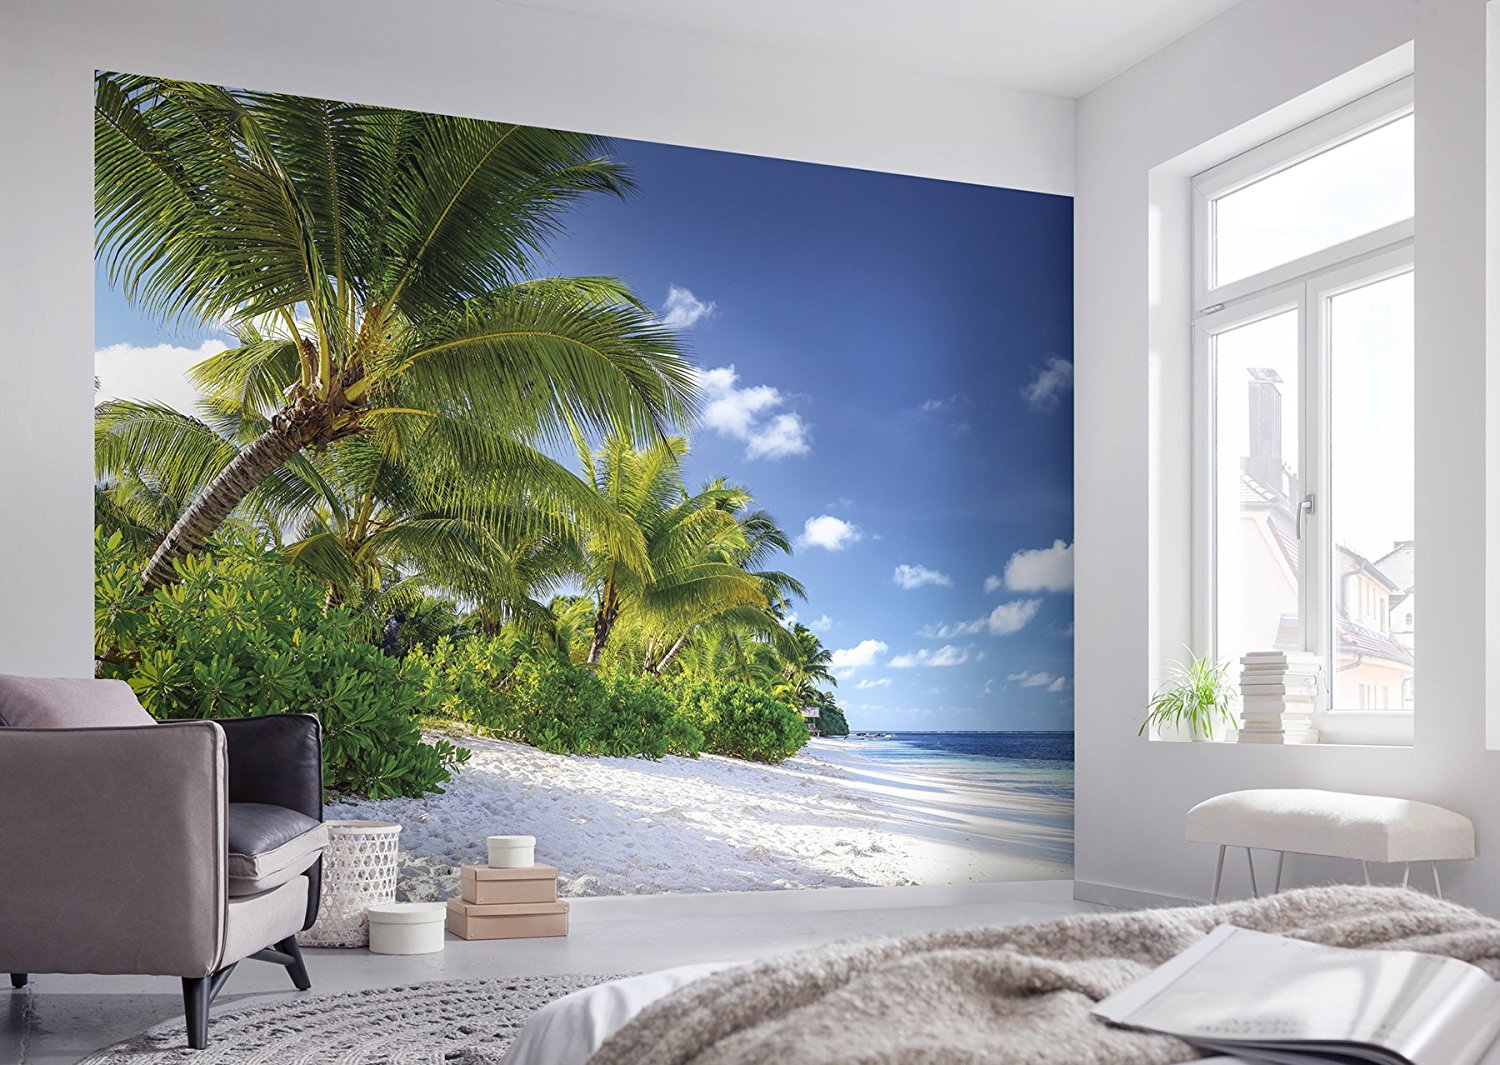 Reunion Wall Mural 8-992 by Komar